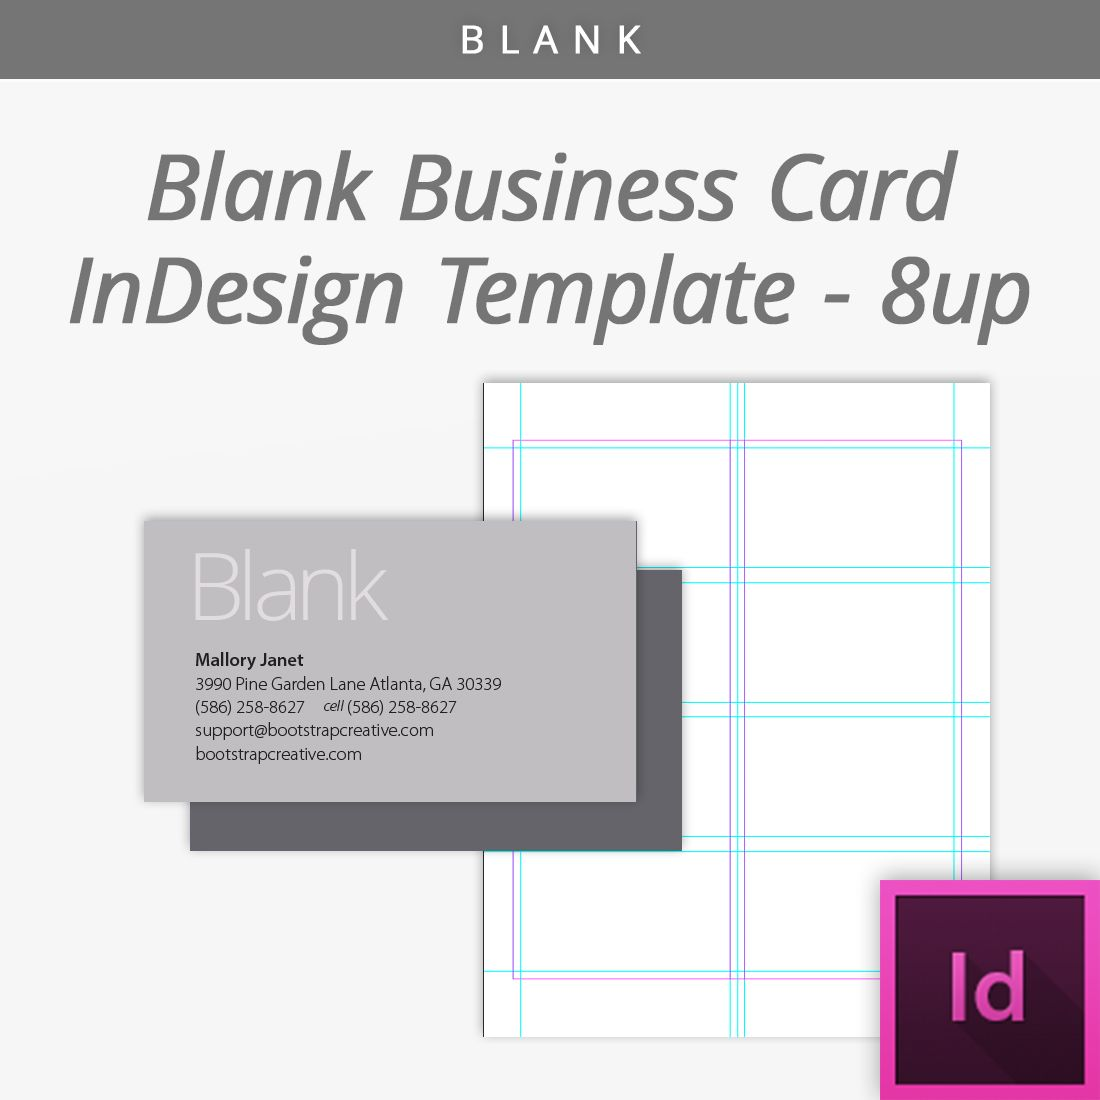 Blank indesign business card template 8 up free download for Template for business card